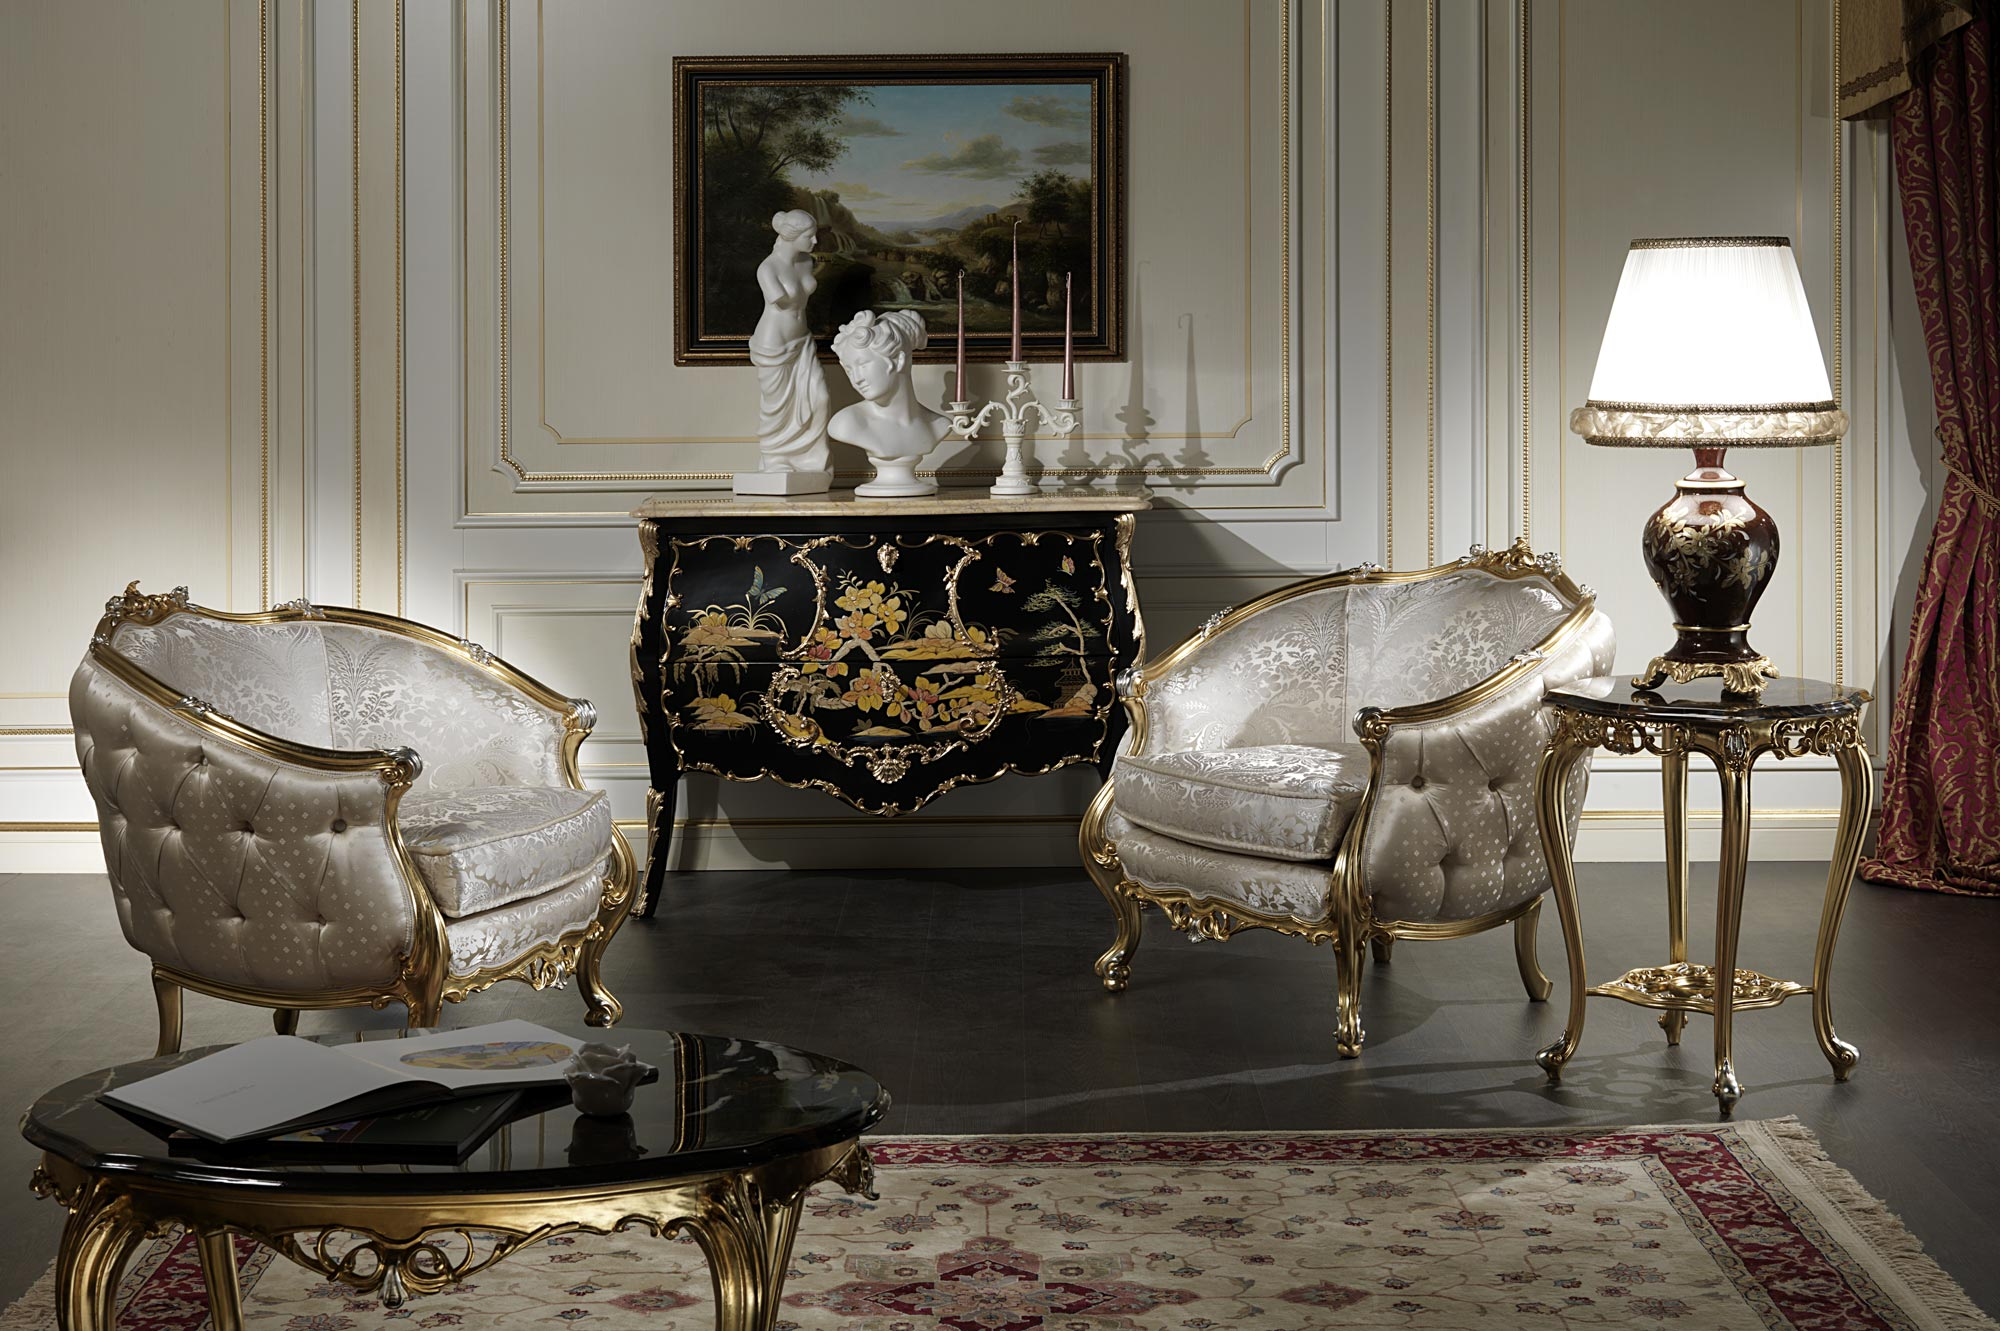 Venezia luxury classic armchairs vimercati classic furniture for Classic home tables